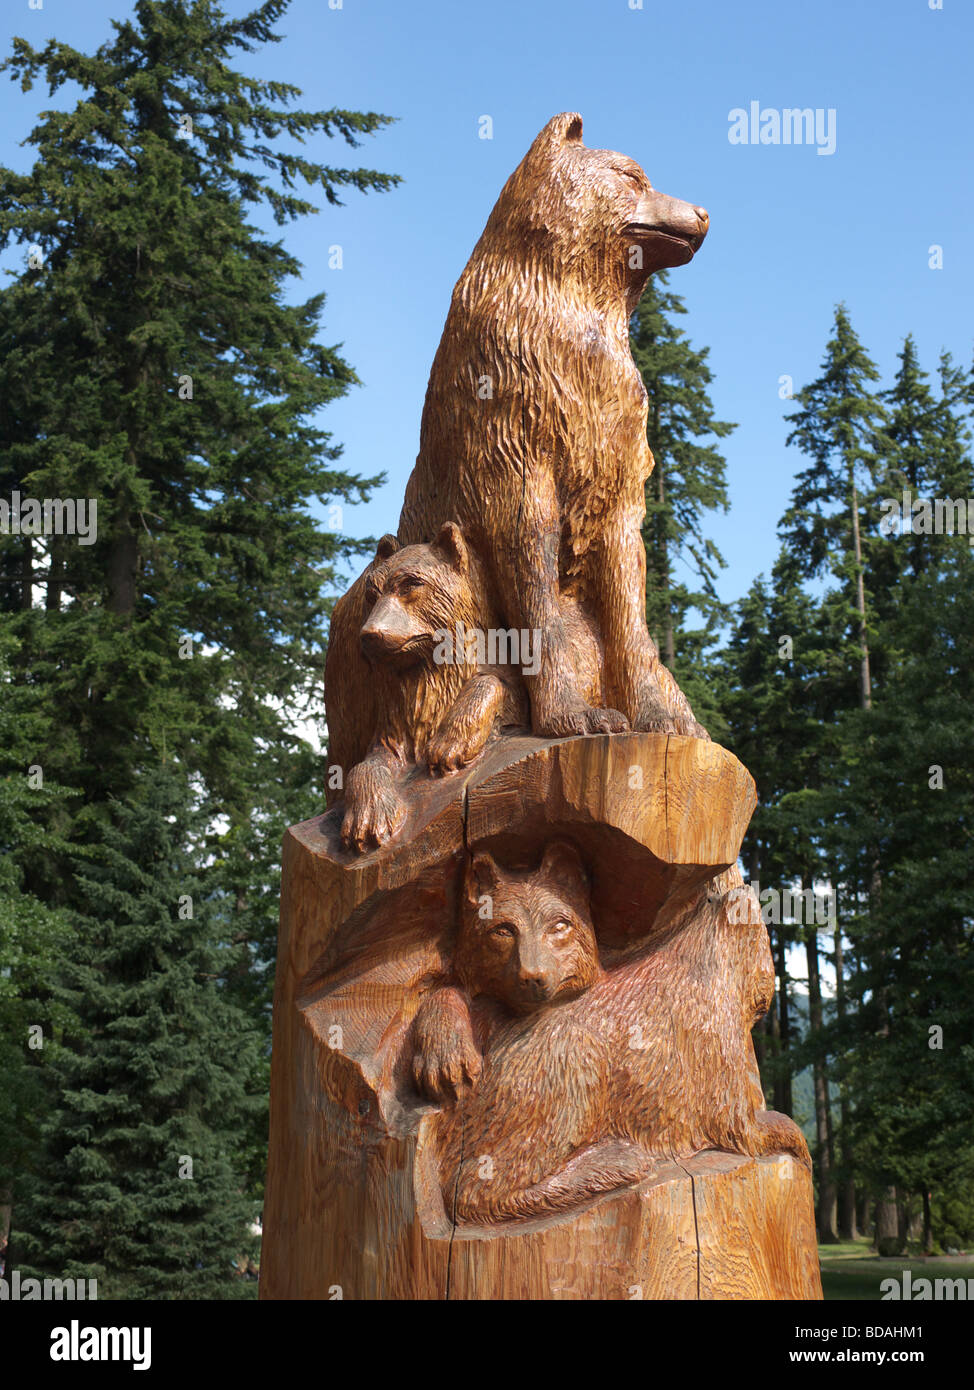 Chainsaw sculptures of wolves on the main street in hope in british